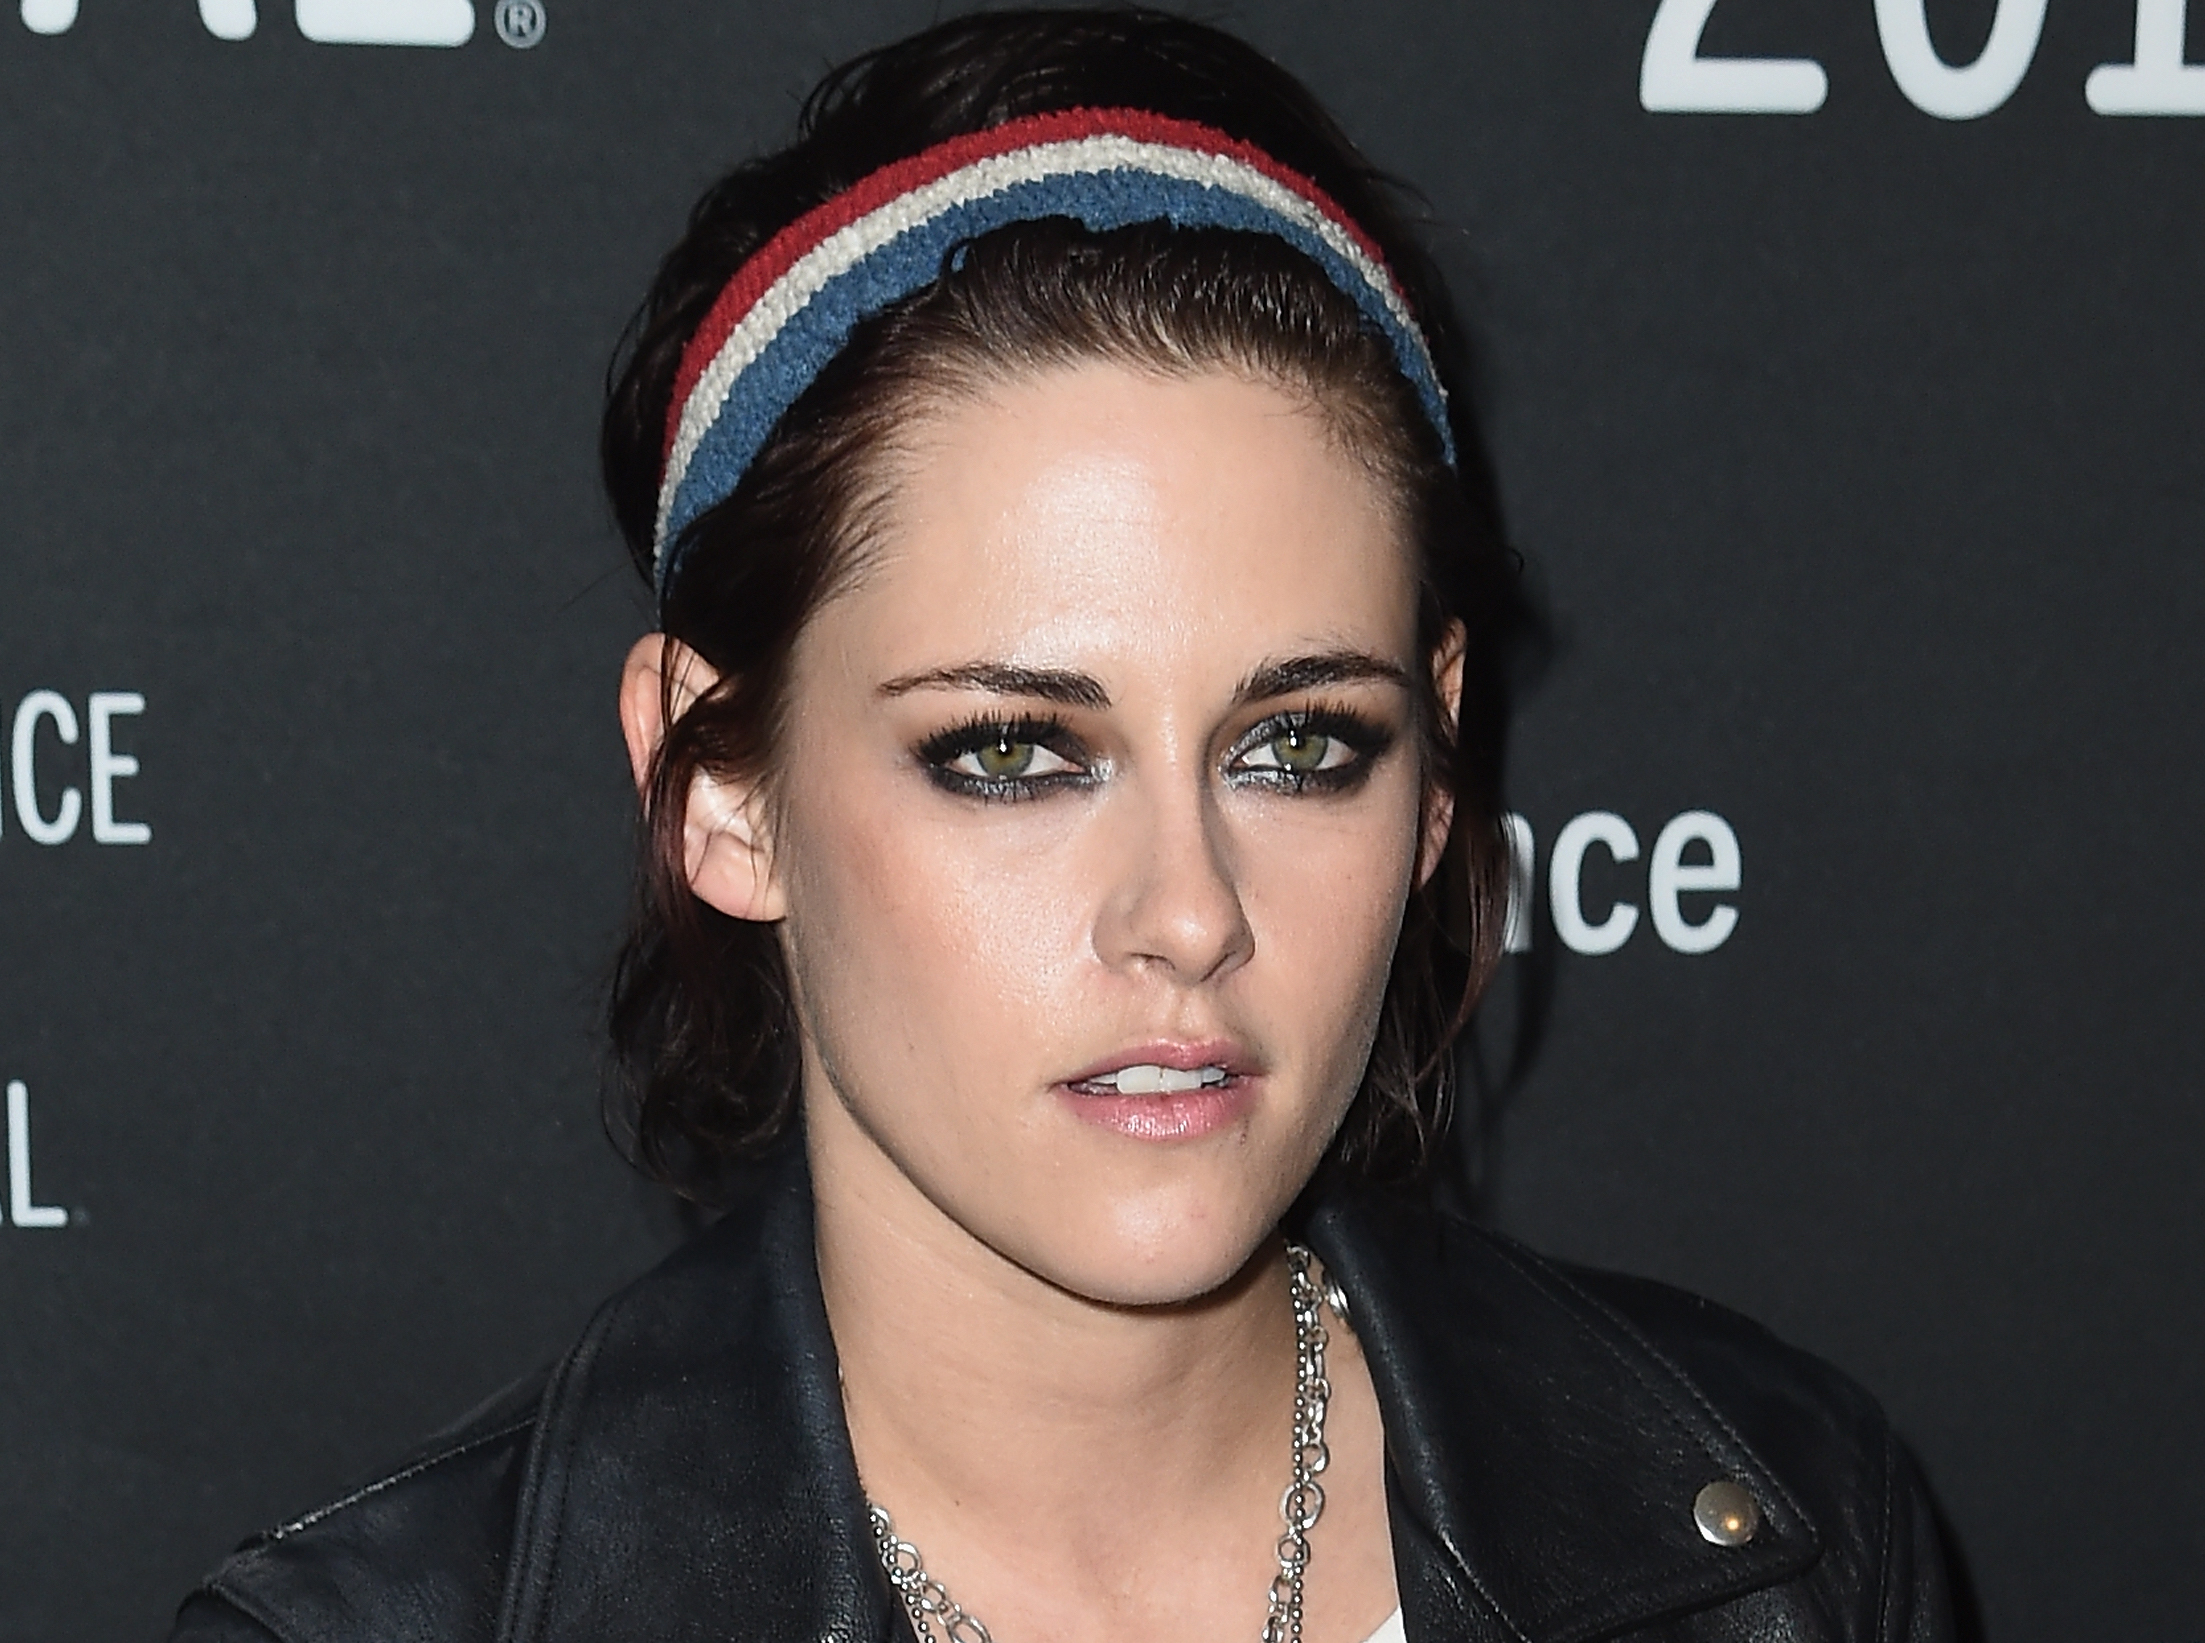 Kristen Stewart's Daisy Dukes ensemble is successfully showing off her edge